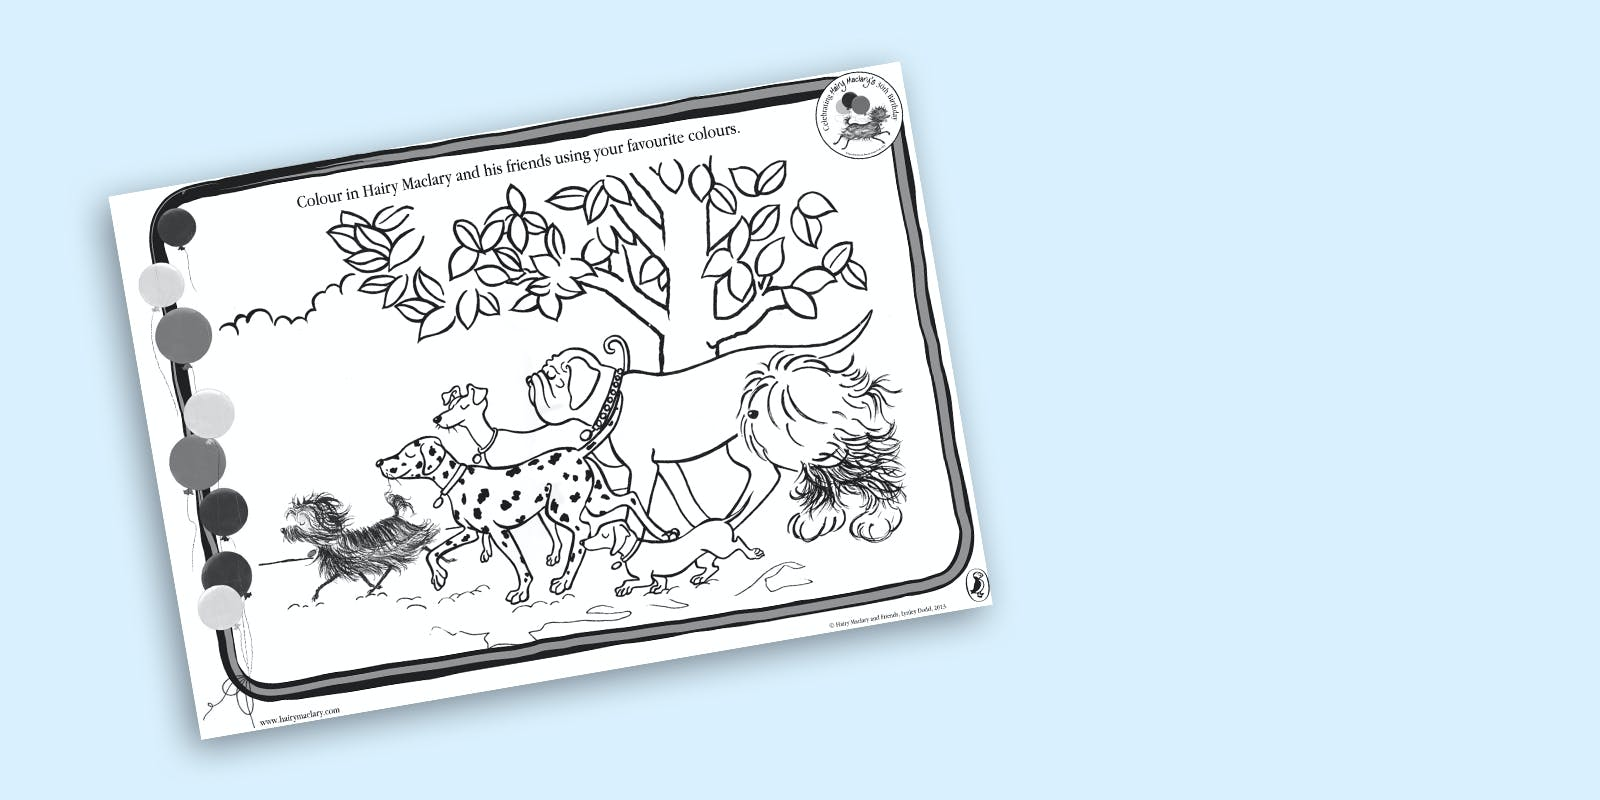 Hairy Maclary colouring page